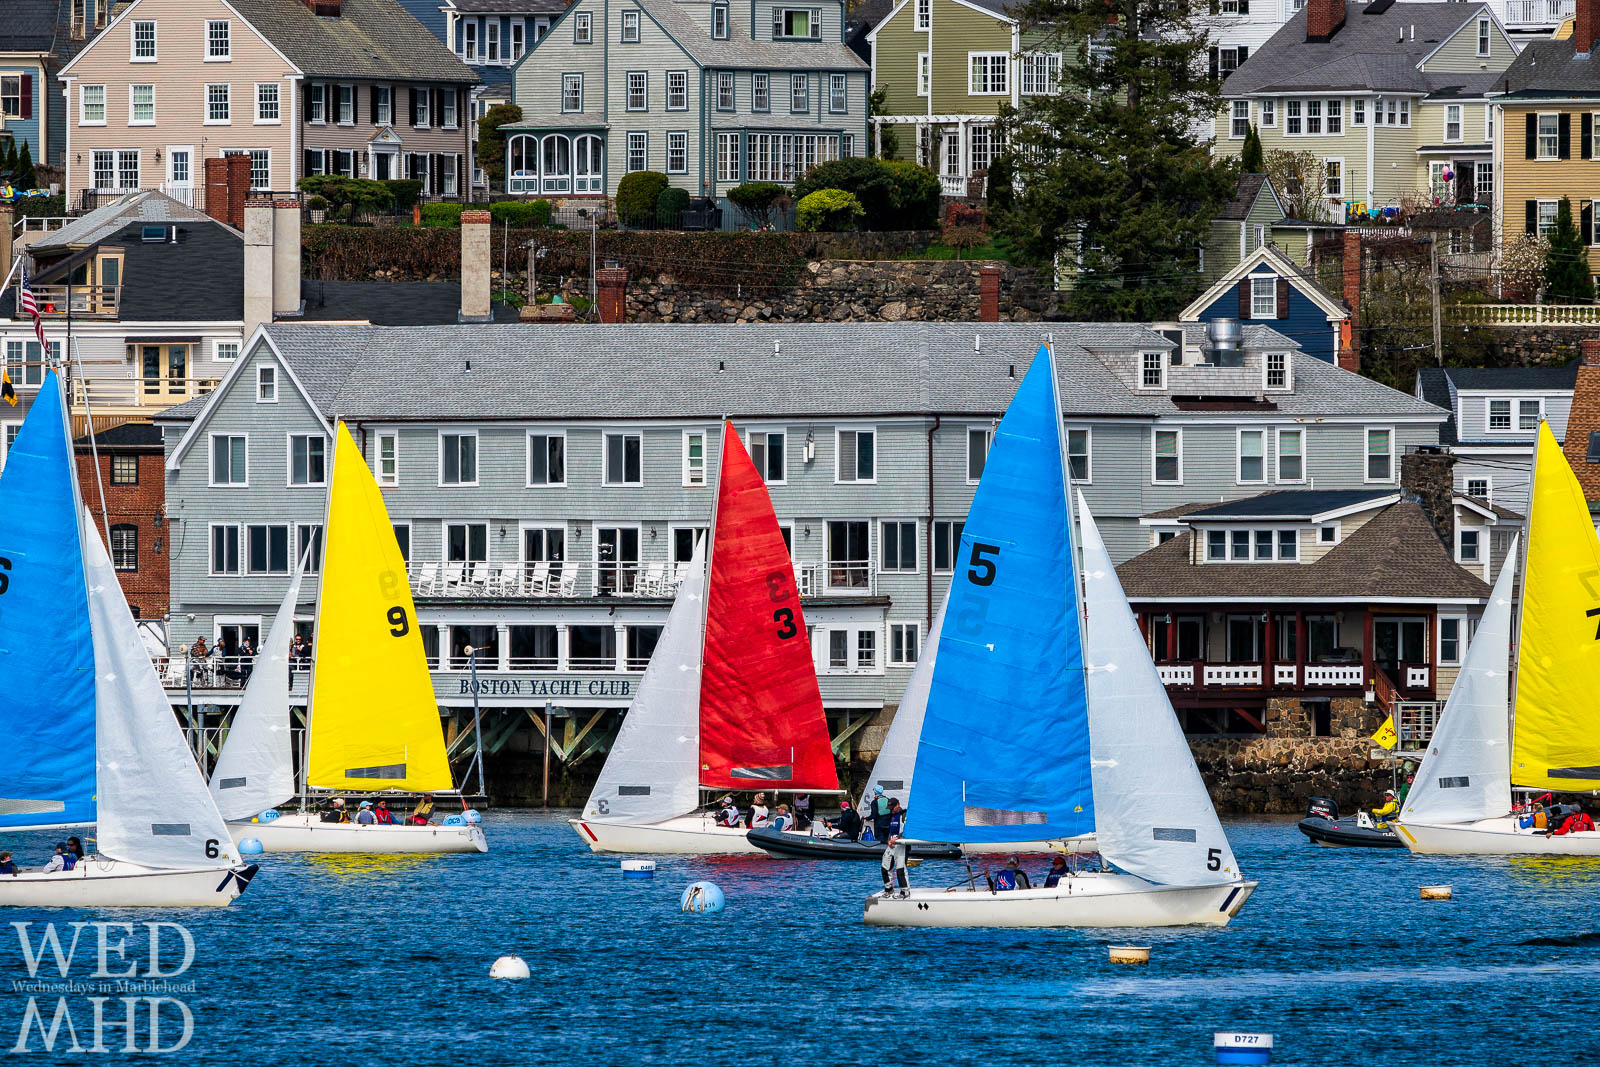 The race for the Jackson Cup took place this weekend in Marblehead harbor with boats crossing in front of the Boston Yacht Club